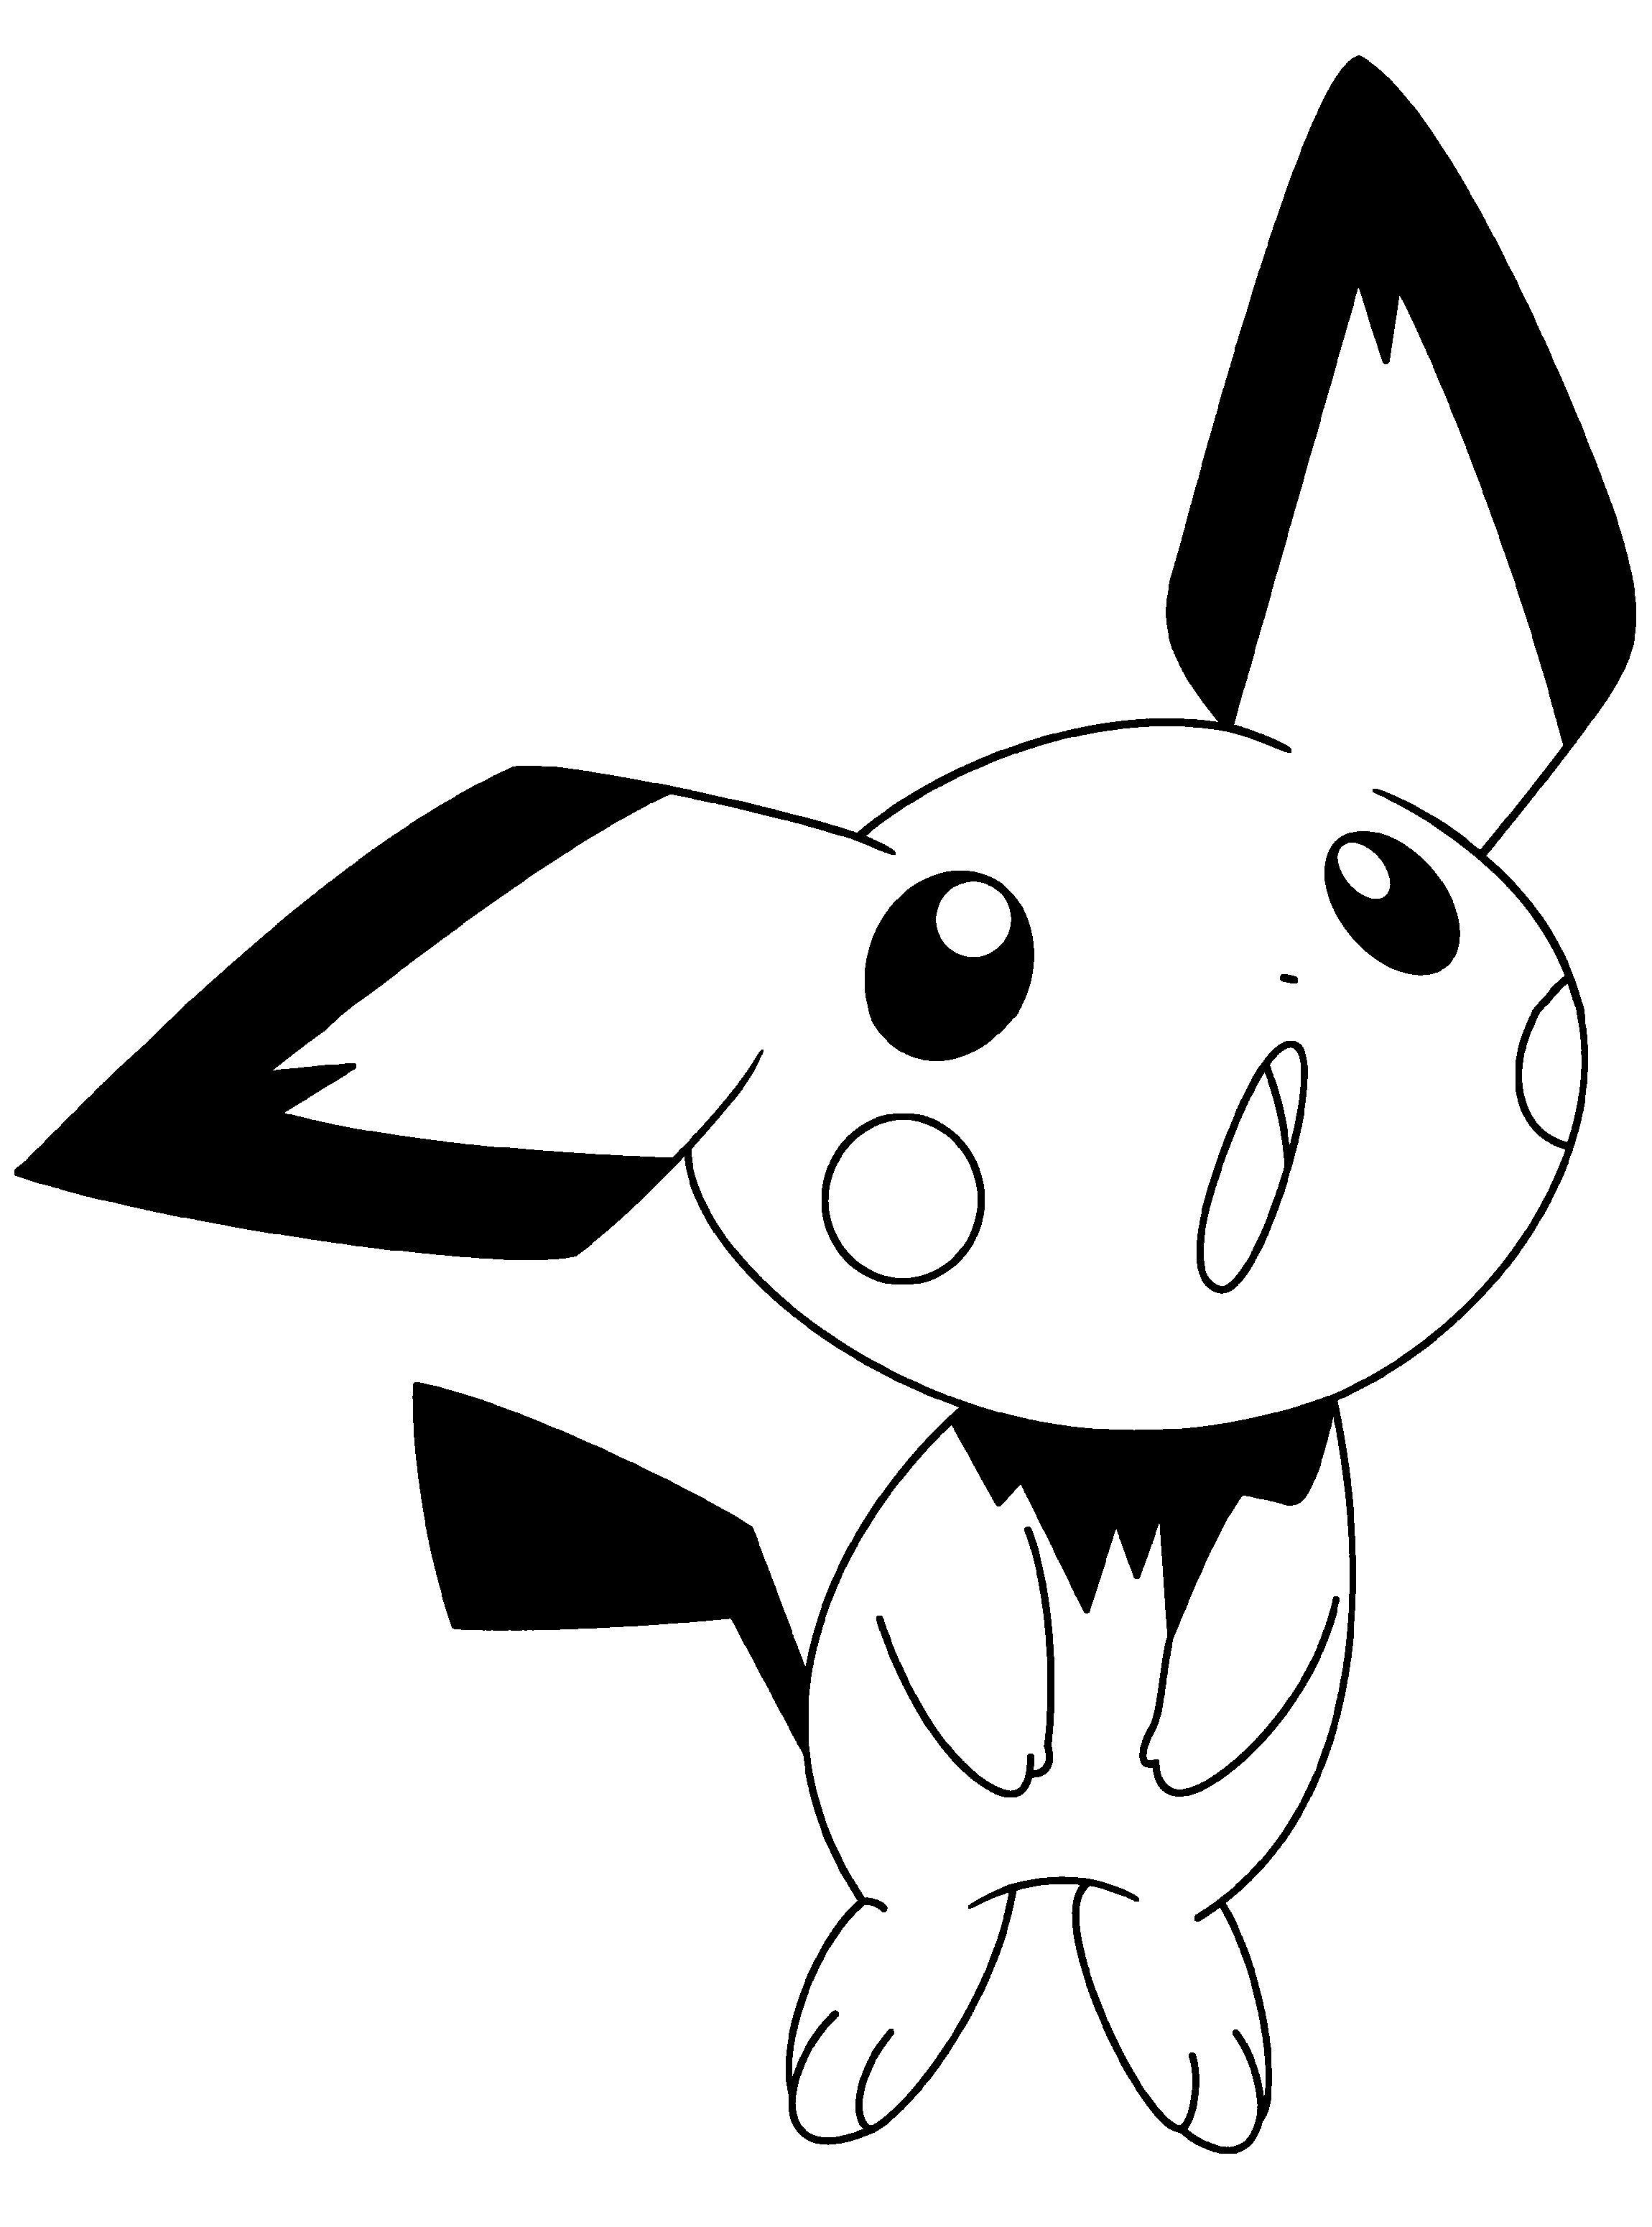 Pichu Coloring Pages At Getdrawings Com Free For Personal Use